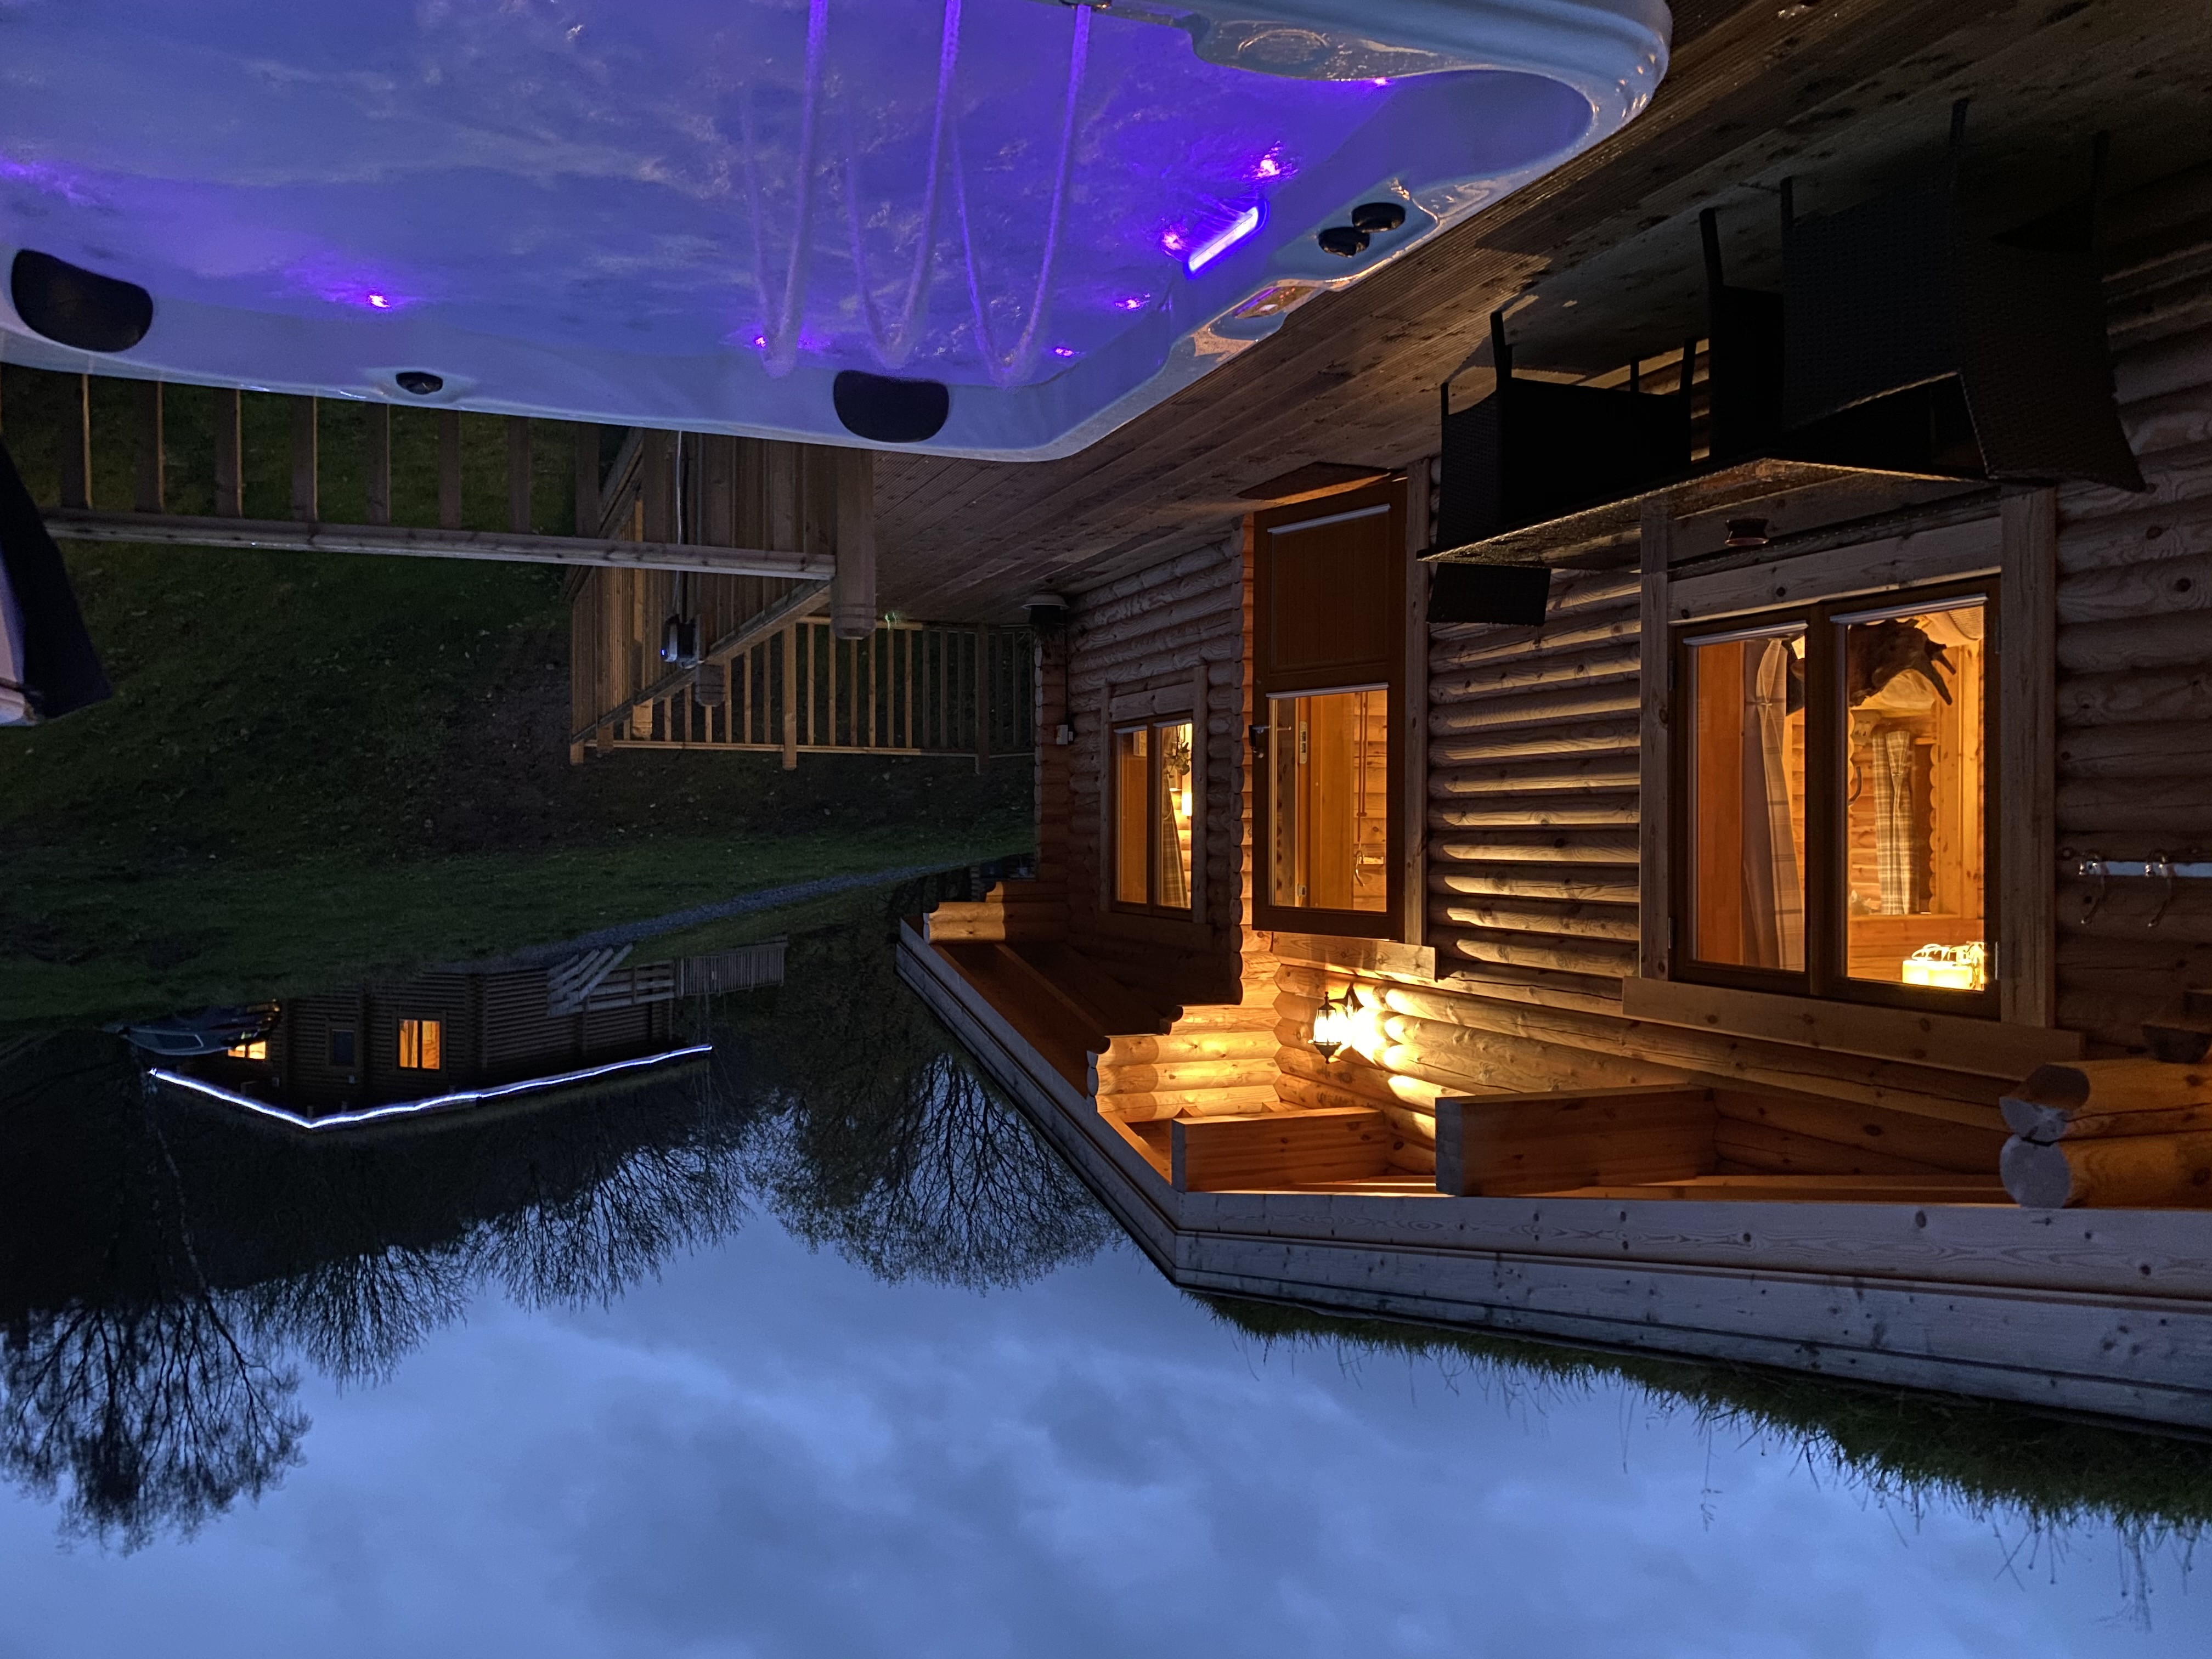 River Garry Lodges With Hot Tubs The Stable Cabins For Rent In Killiecrankie Scotland United Kingdom